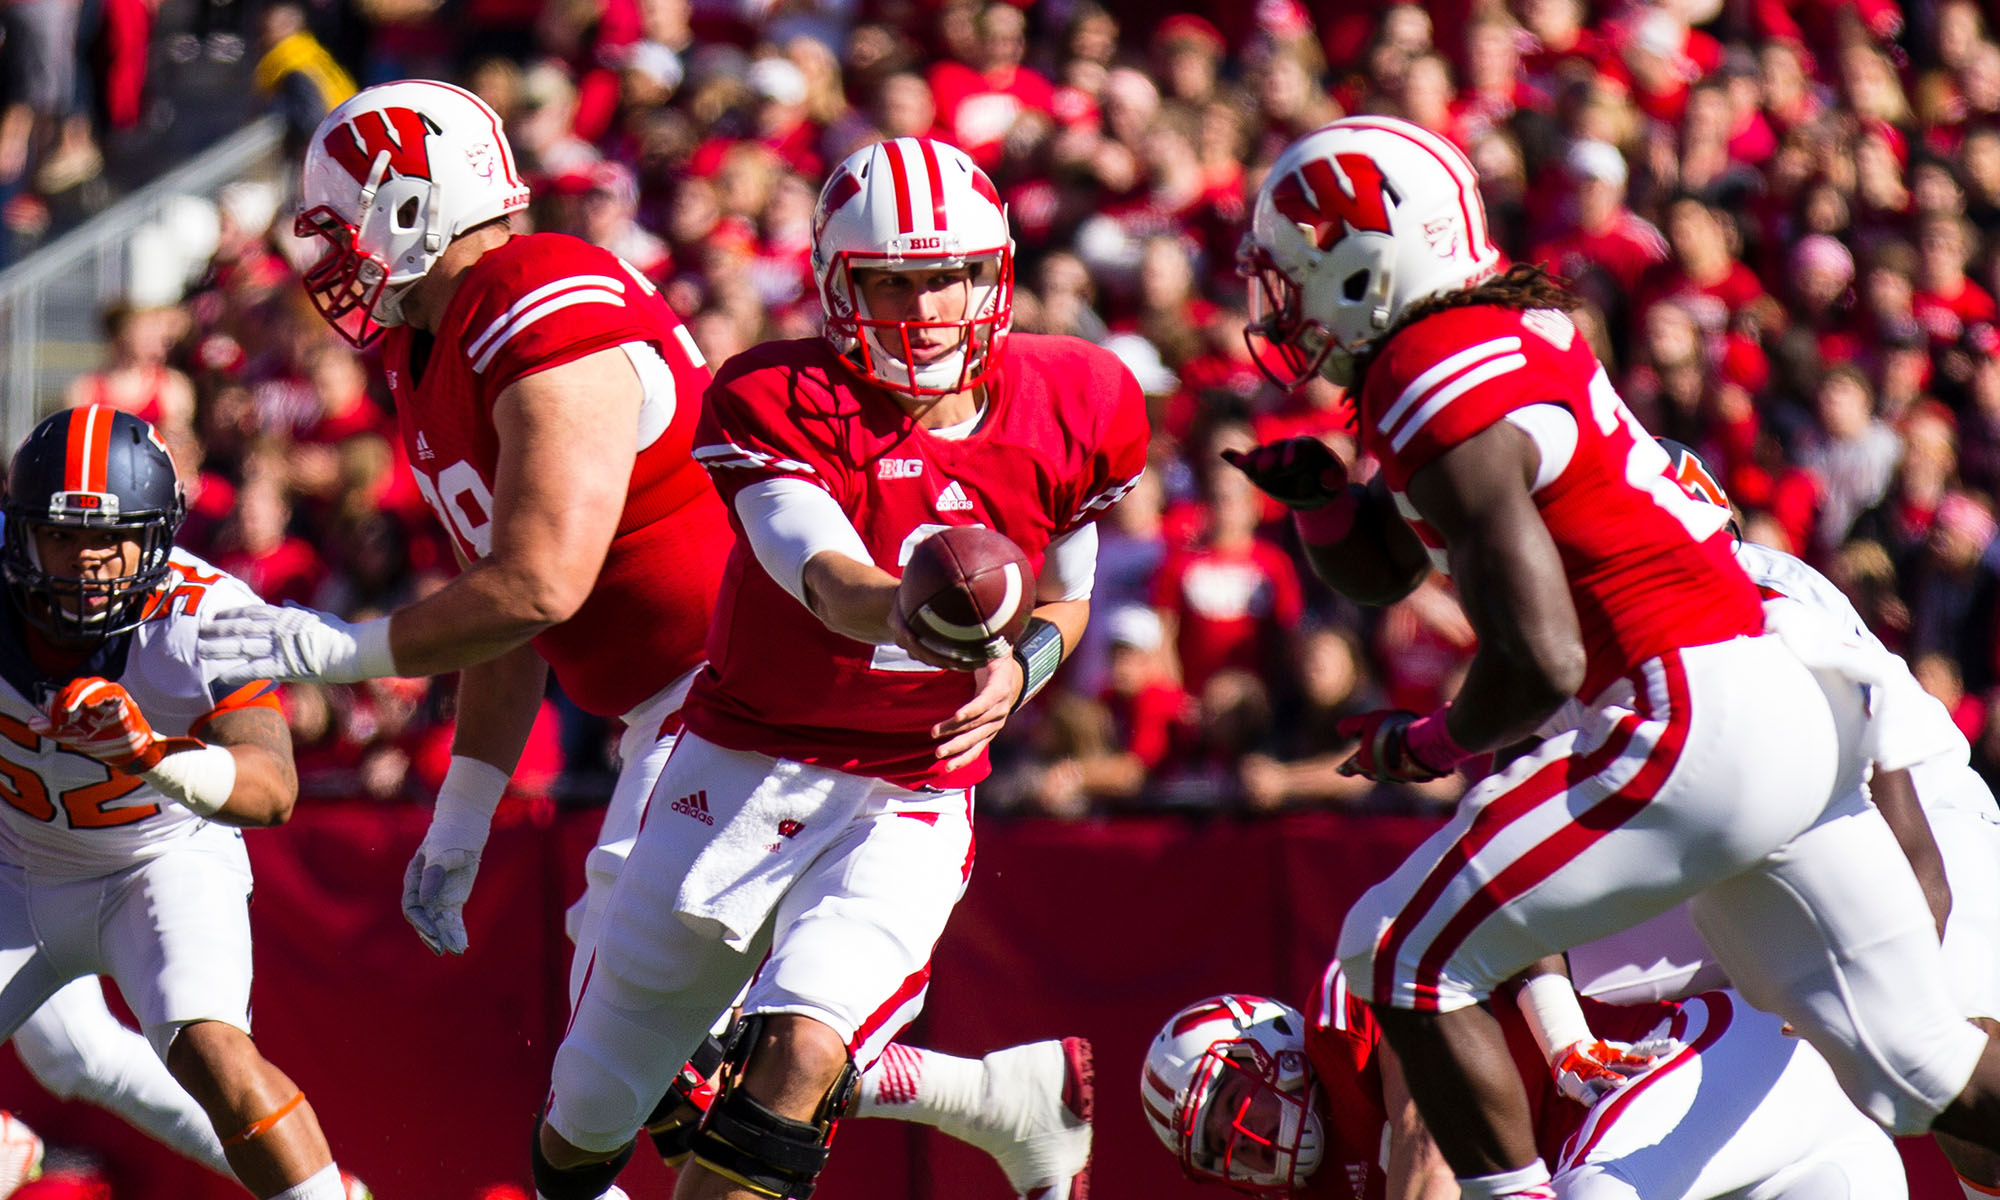 Wisconsin Badgers Football Photographer